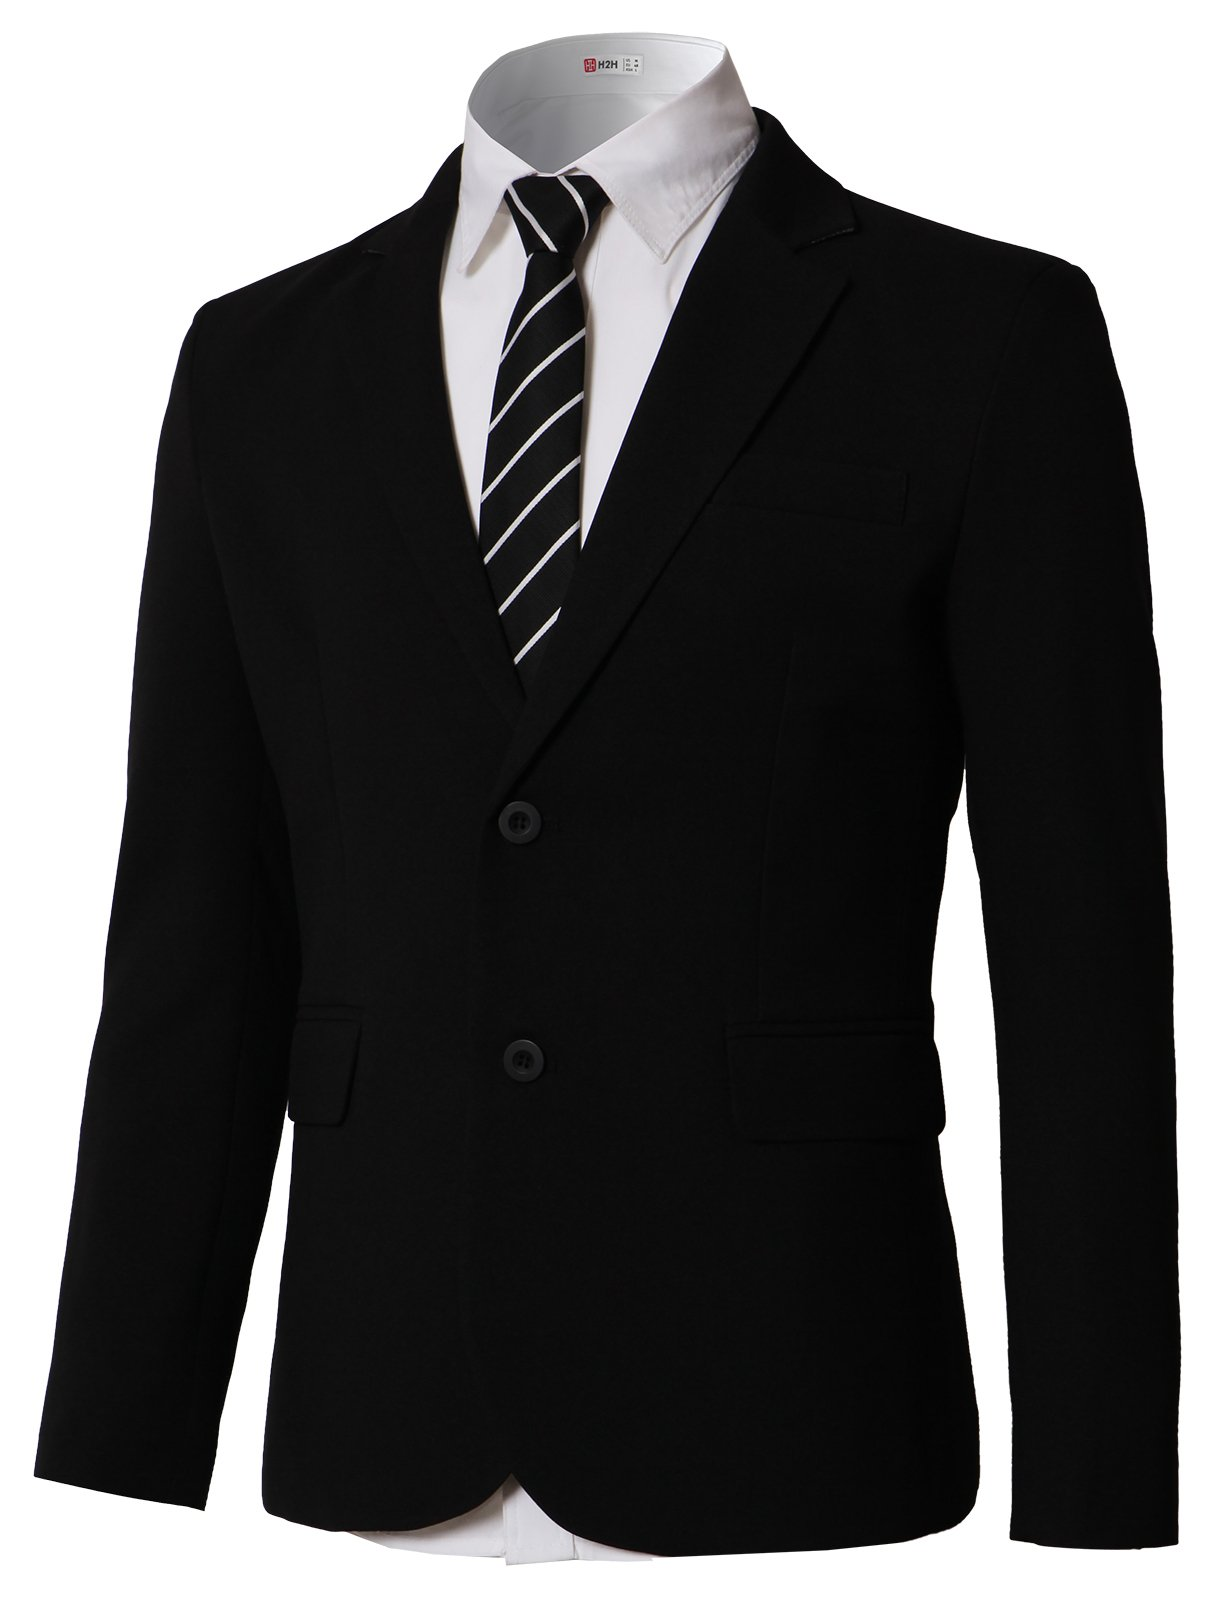 H2H Mens Casual Slim Fit One Button Autumn Business Sport Coat Outwear Black US S/Asia L (KMOJA0391)